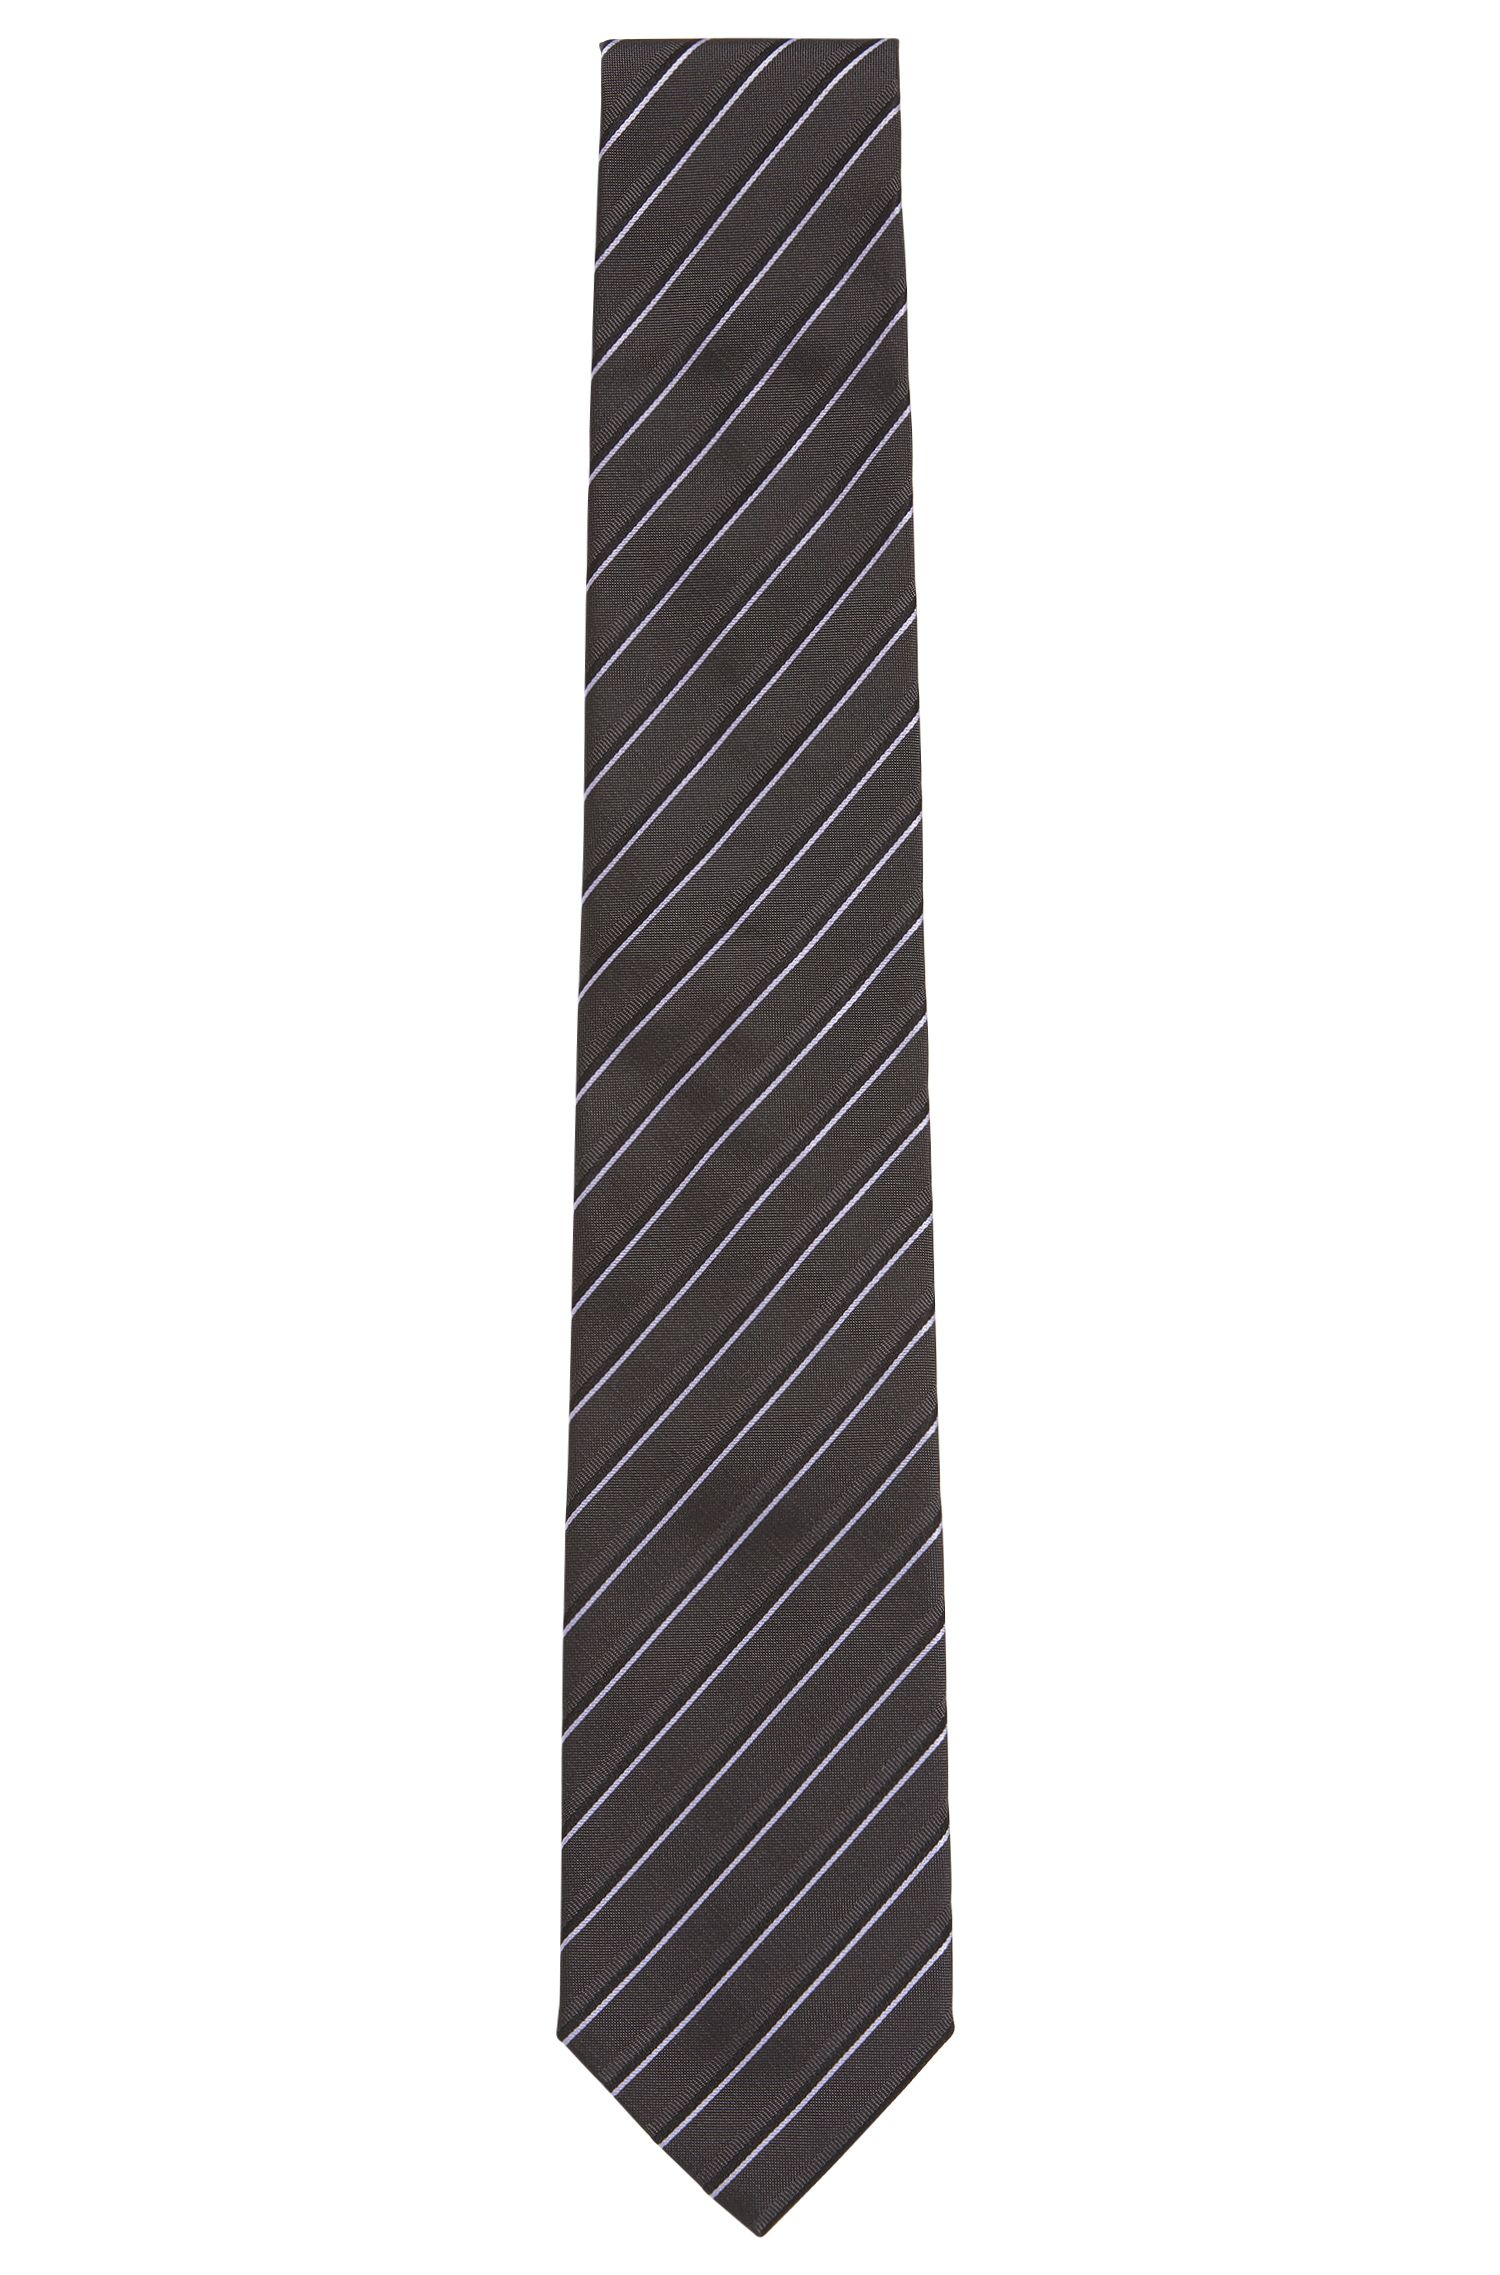 Textured Silk Tie, Regular | Tie 7.5 cm